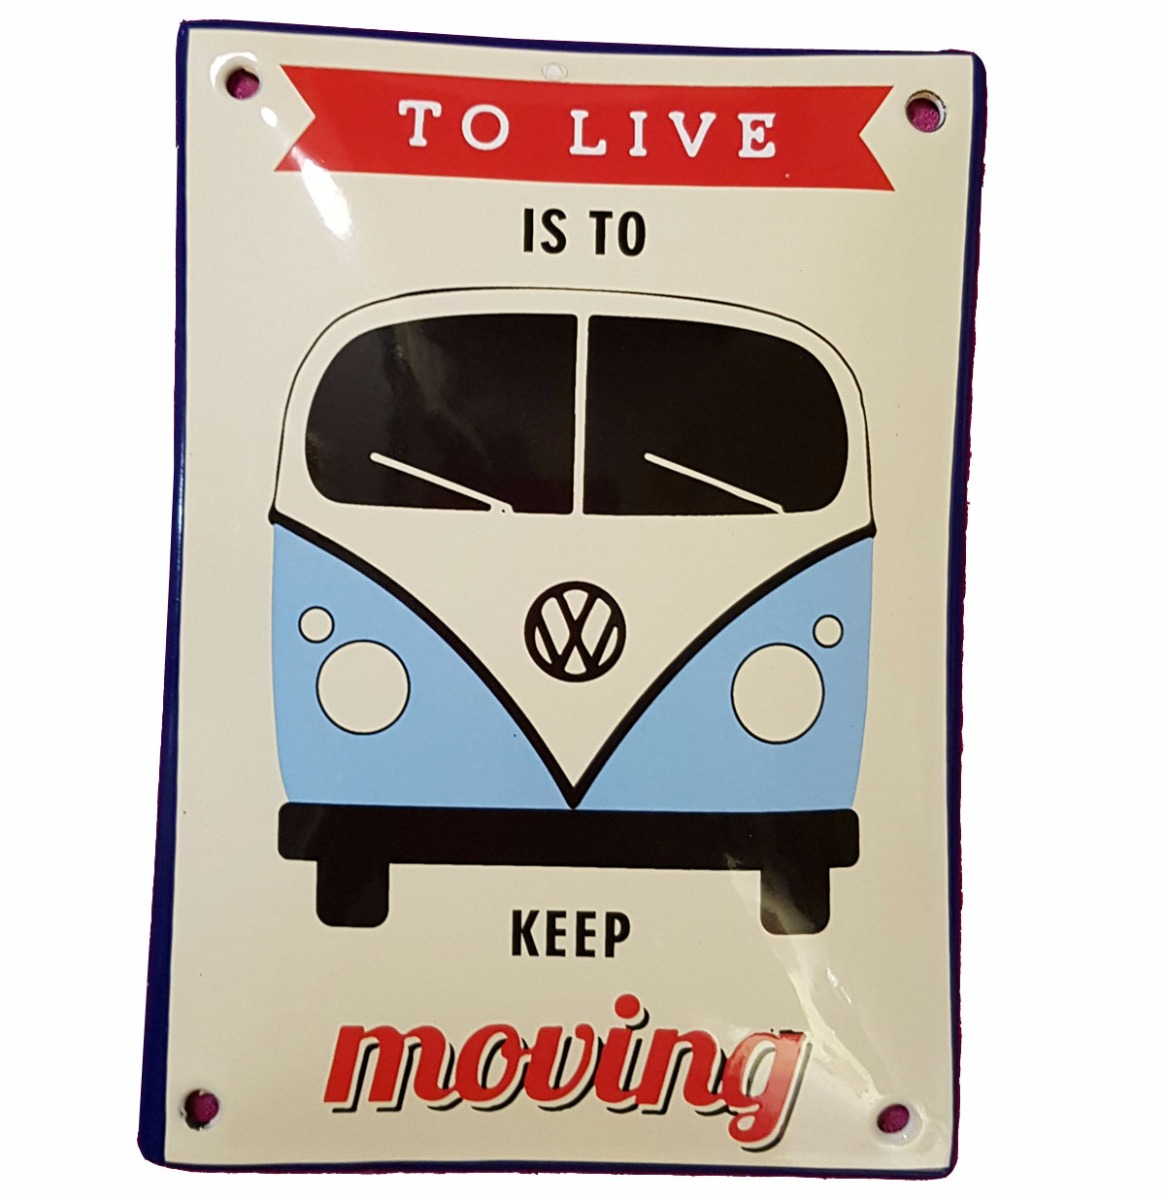 Volkswagen Bulli To Live Is To Keep Moving Emaille Bord 10 x 14 cm